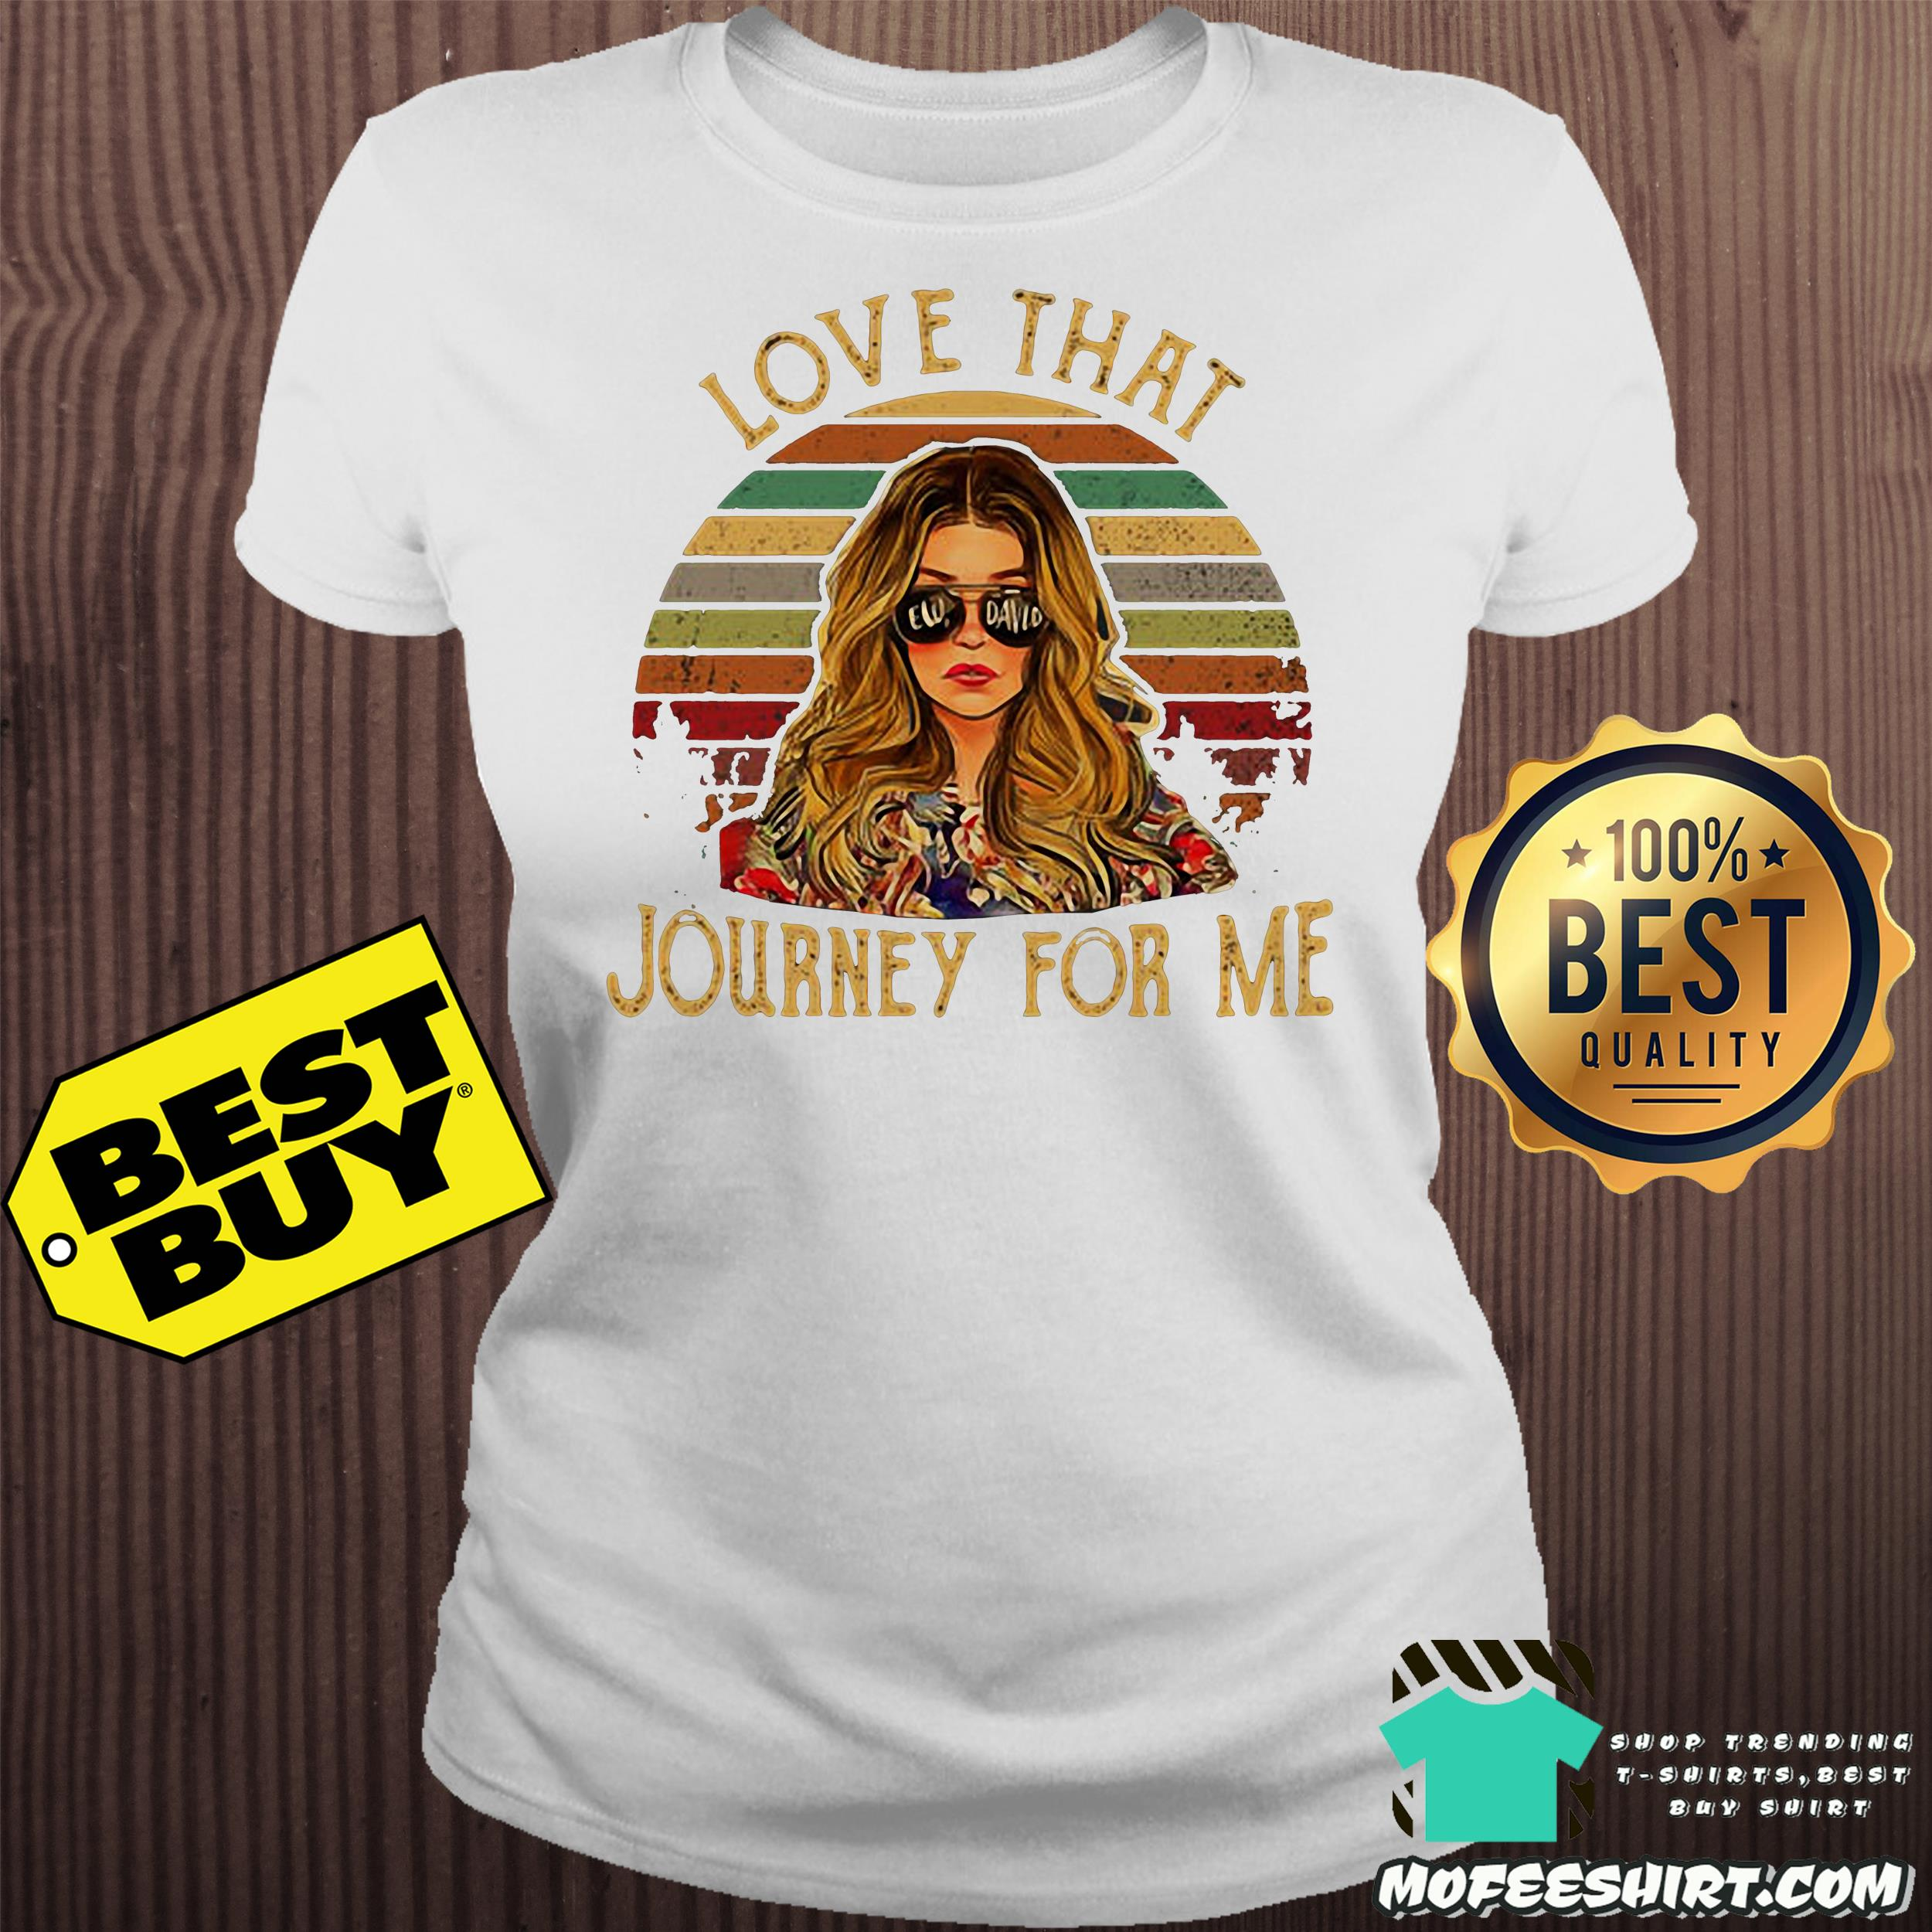 7 1 - Ew David love that Journey for me vintage shirt